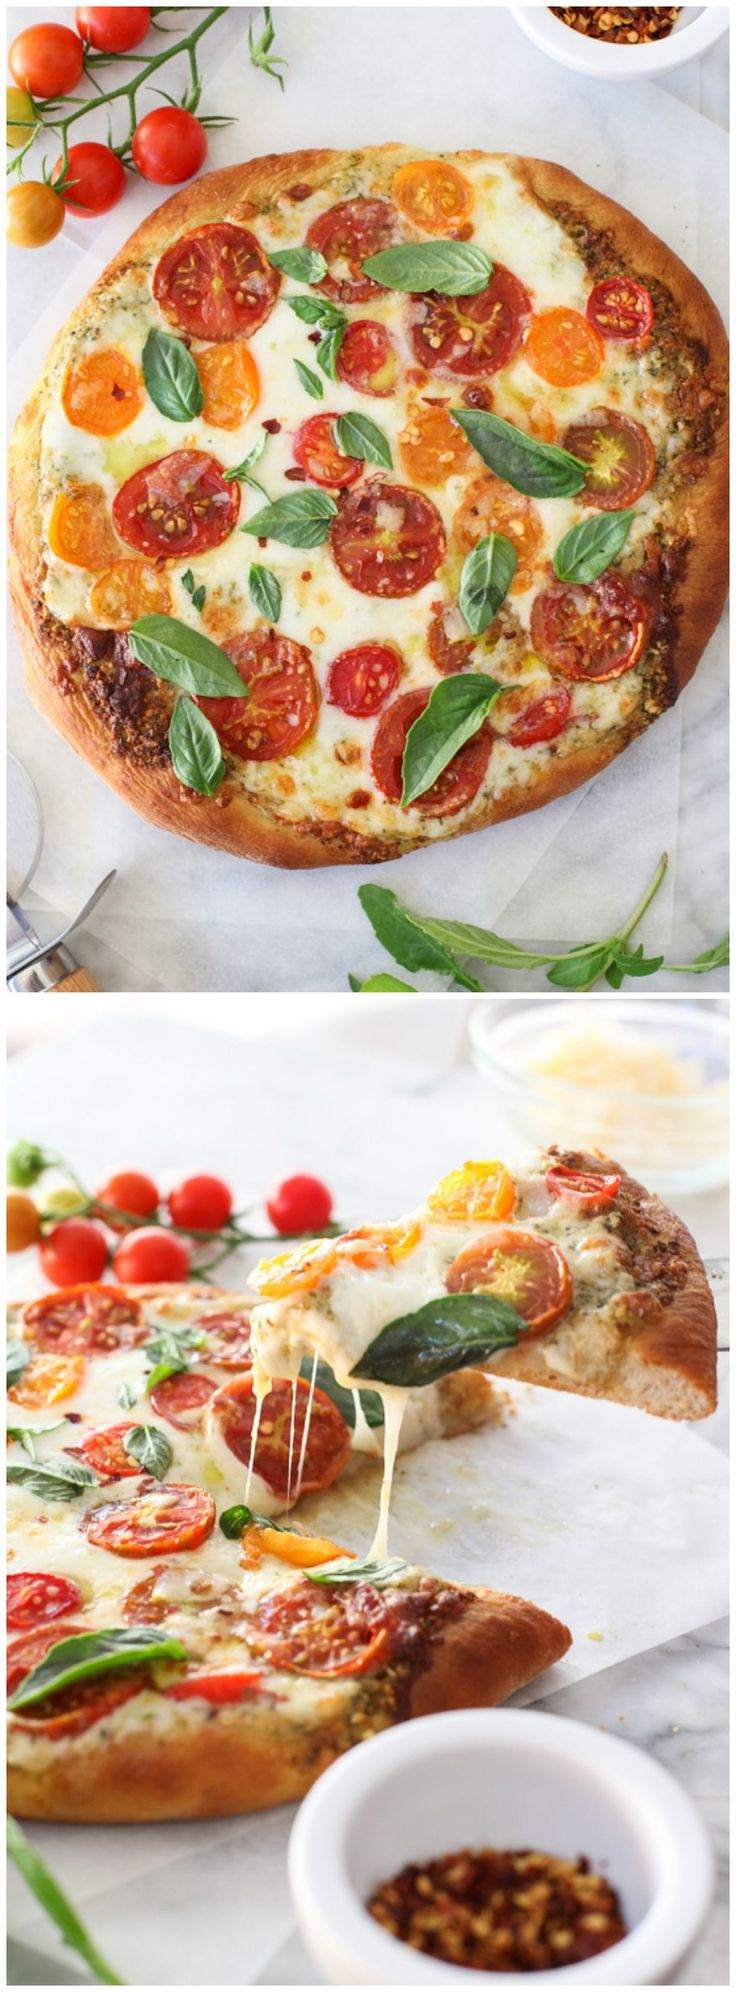 Pesto Pizza with Fresh Tomatoes and Mozzarella #recipe and how to make perfect pizza at home